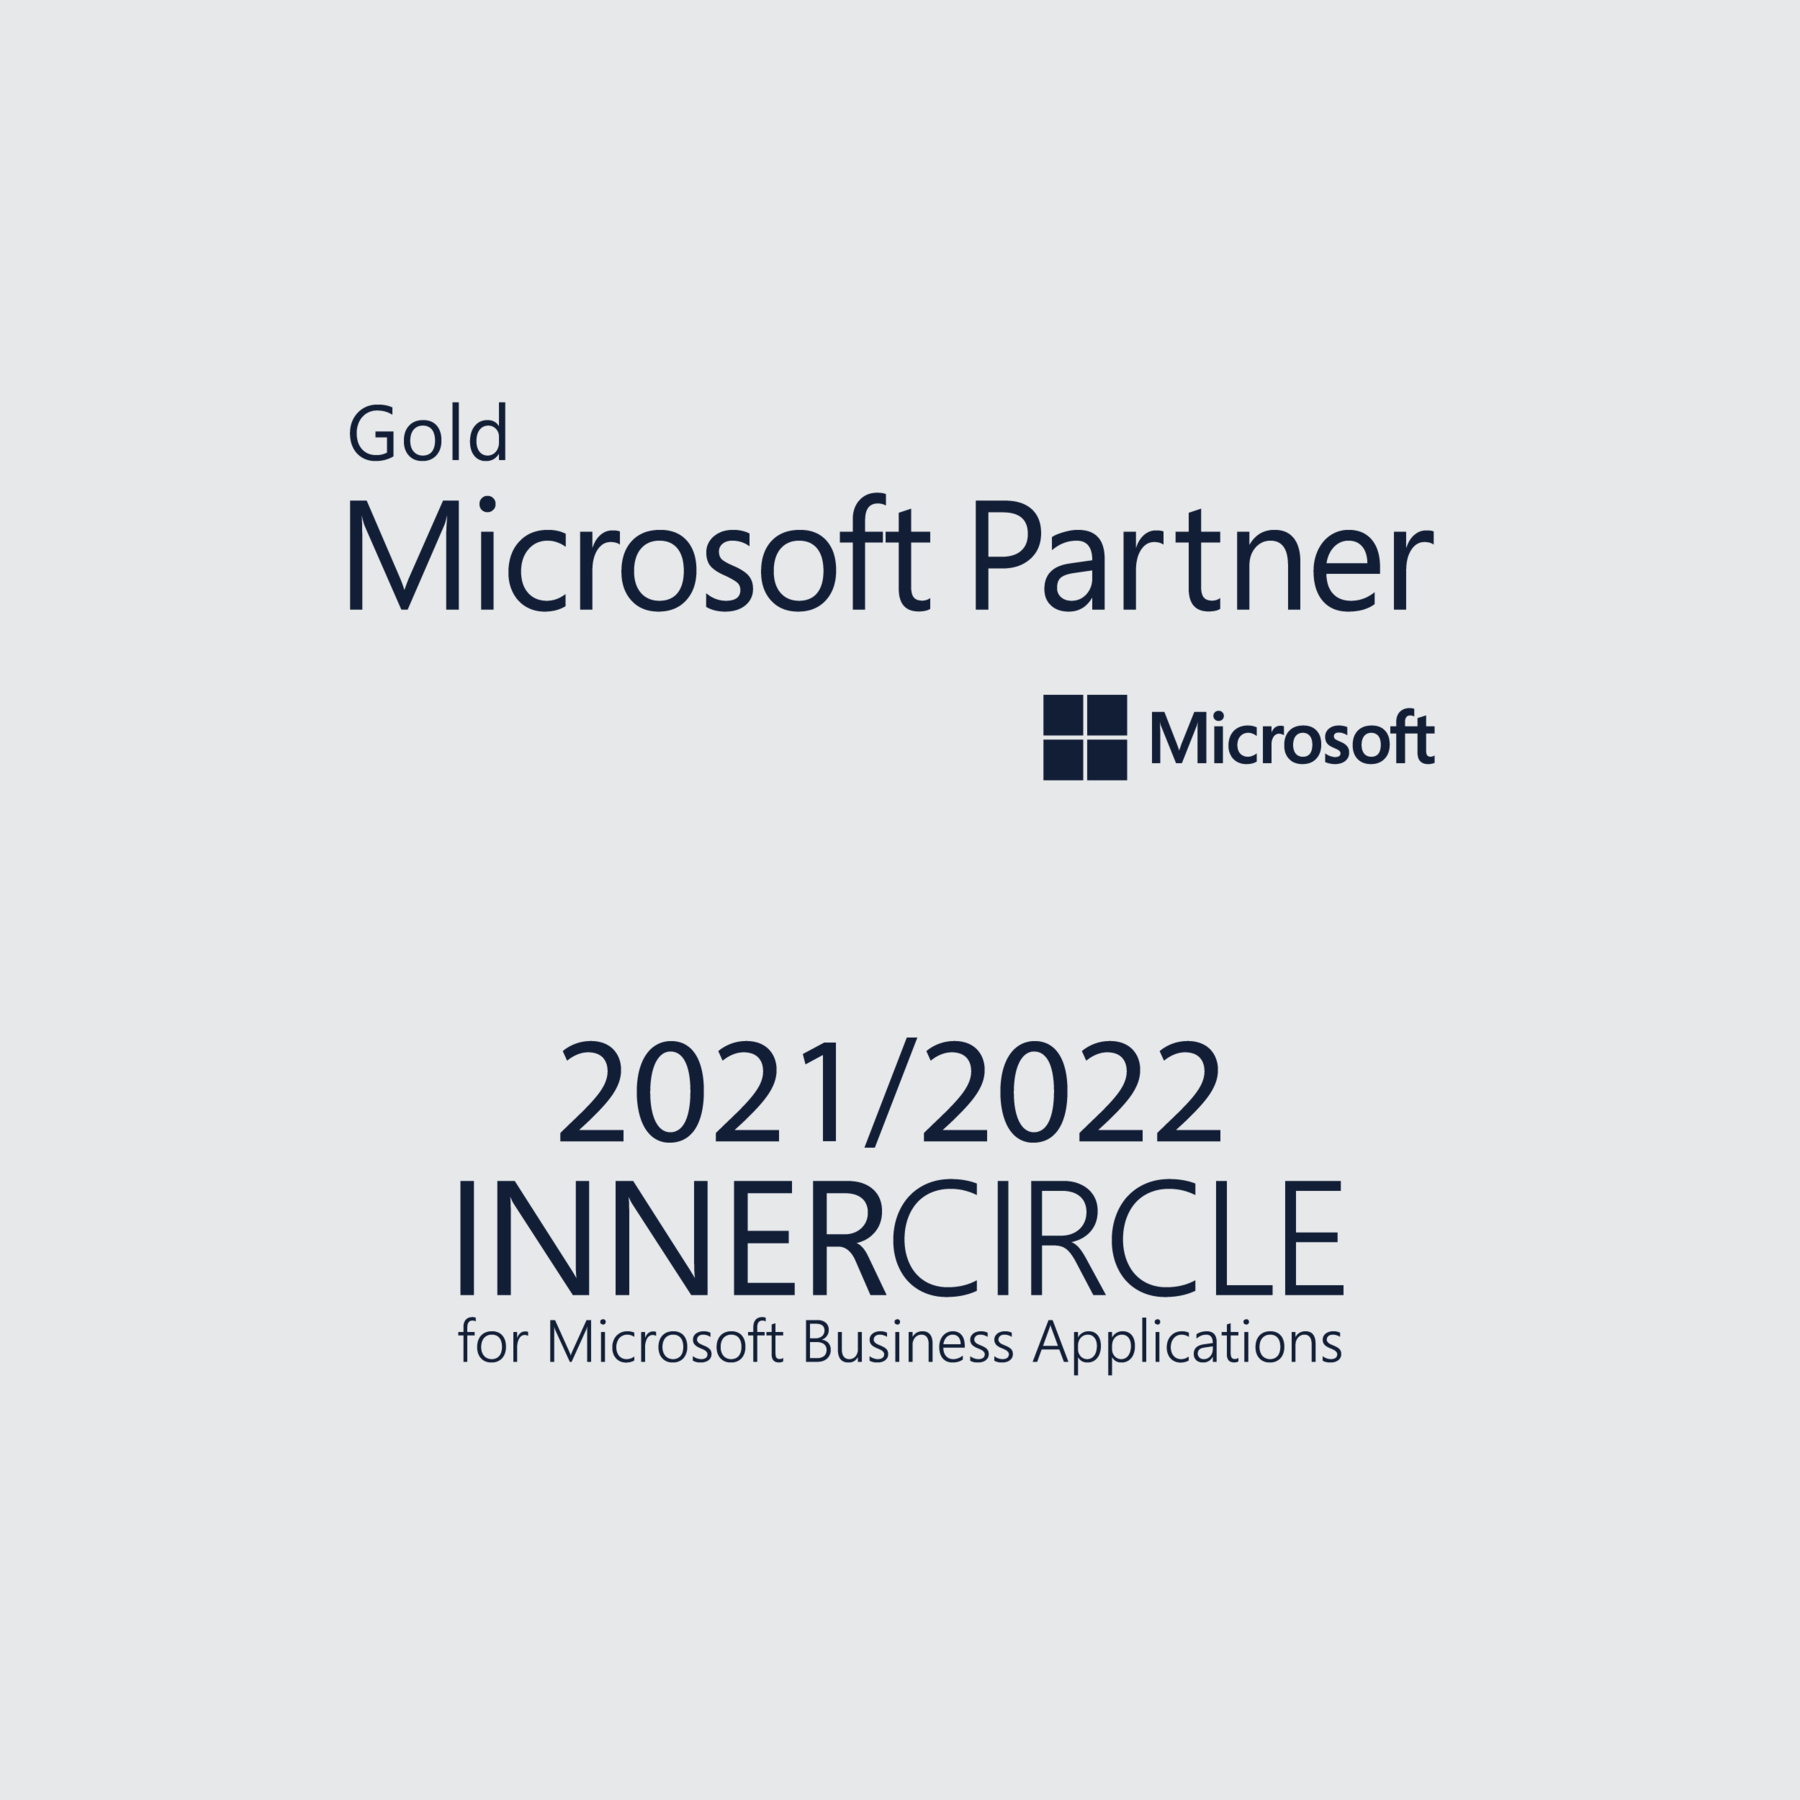 Our Microsoft Gold Partner and Inner Circle status